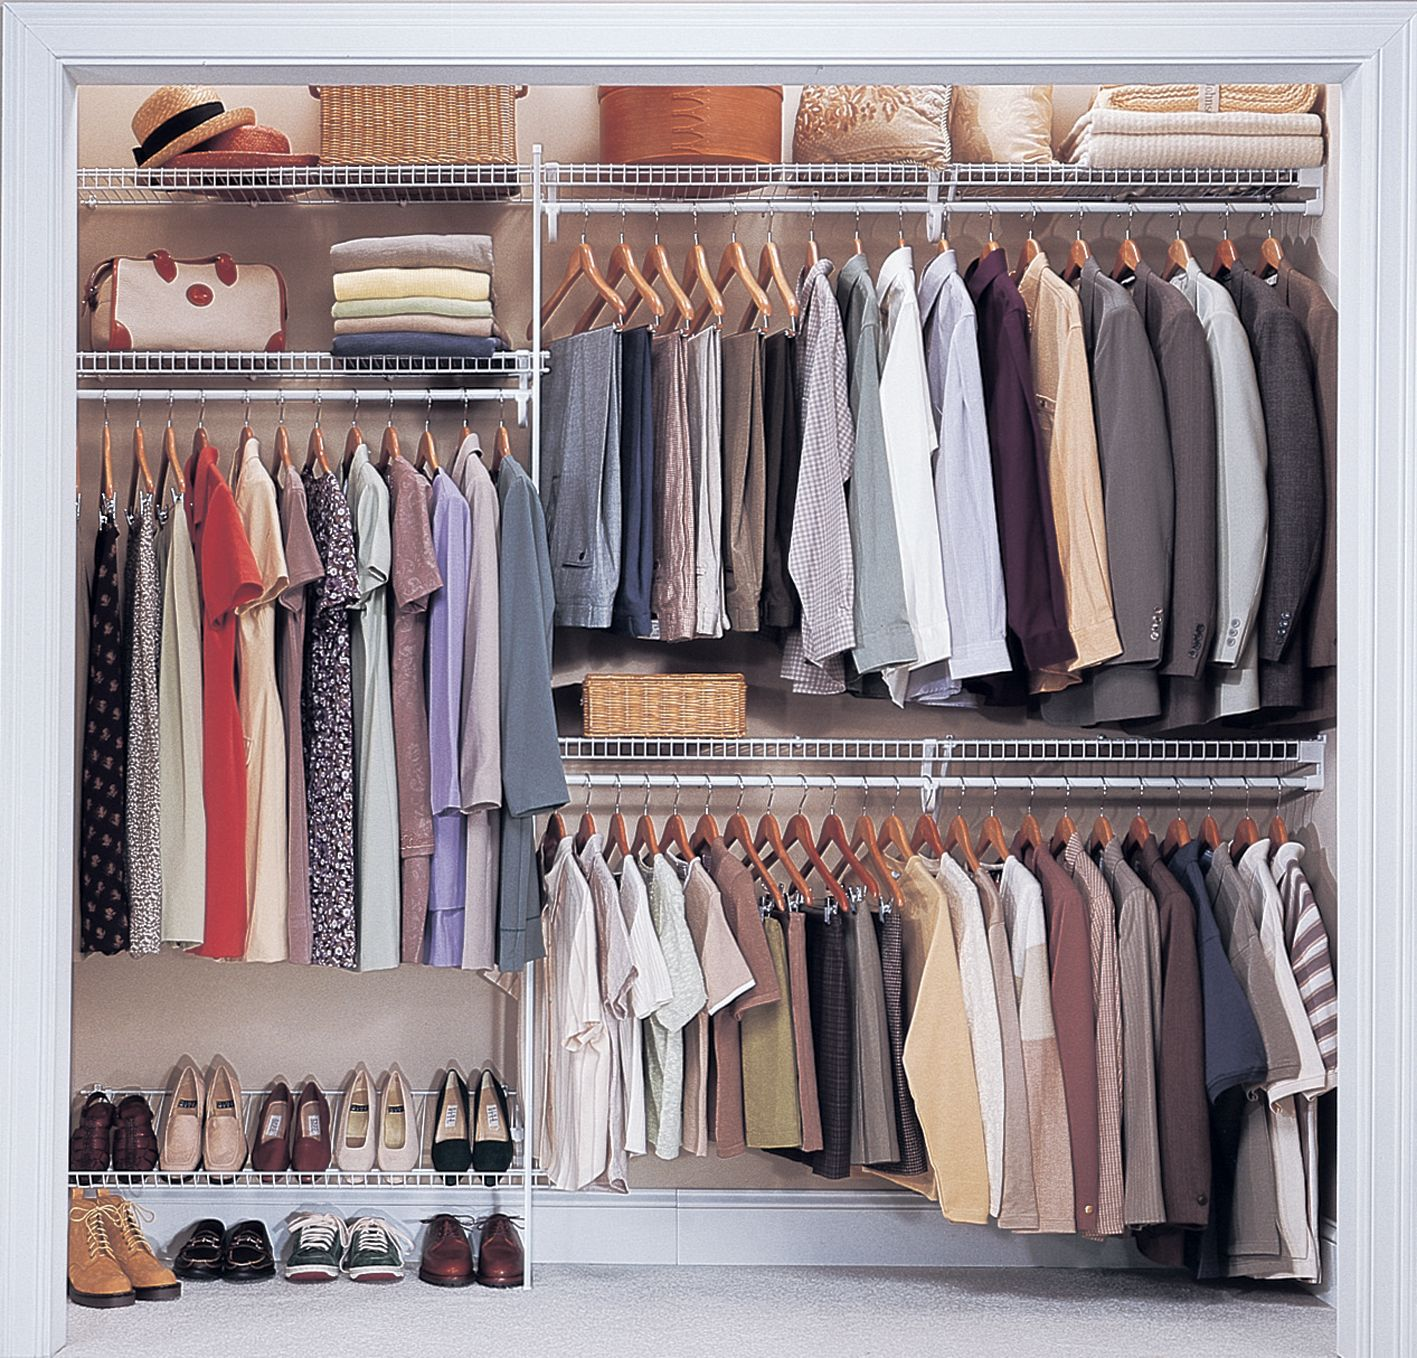 Reach In Closet Ideas   Google Search